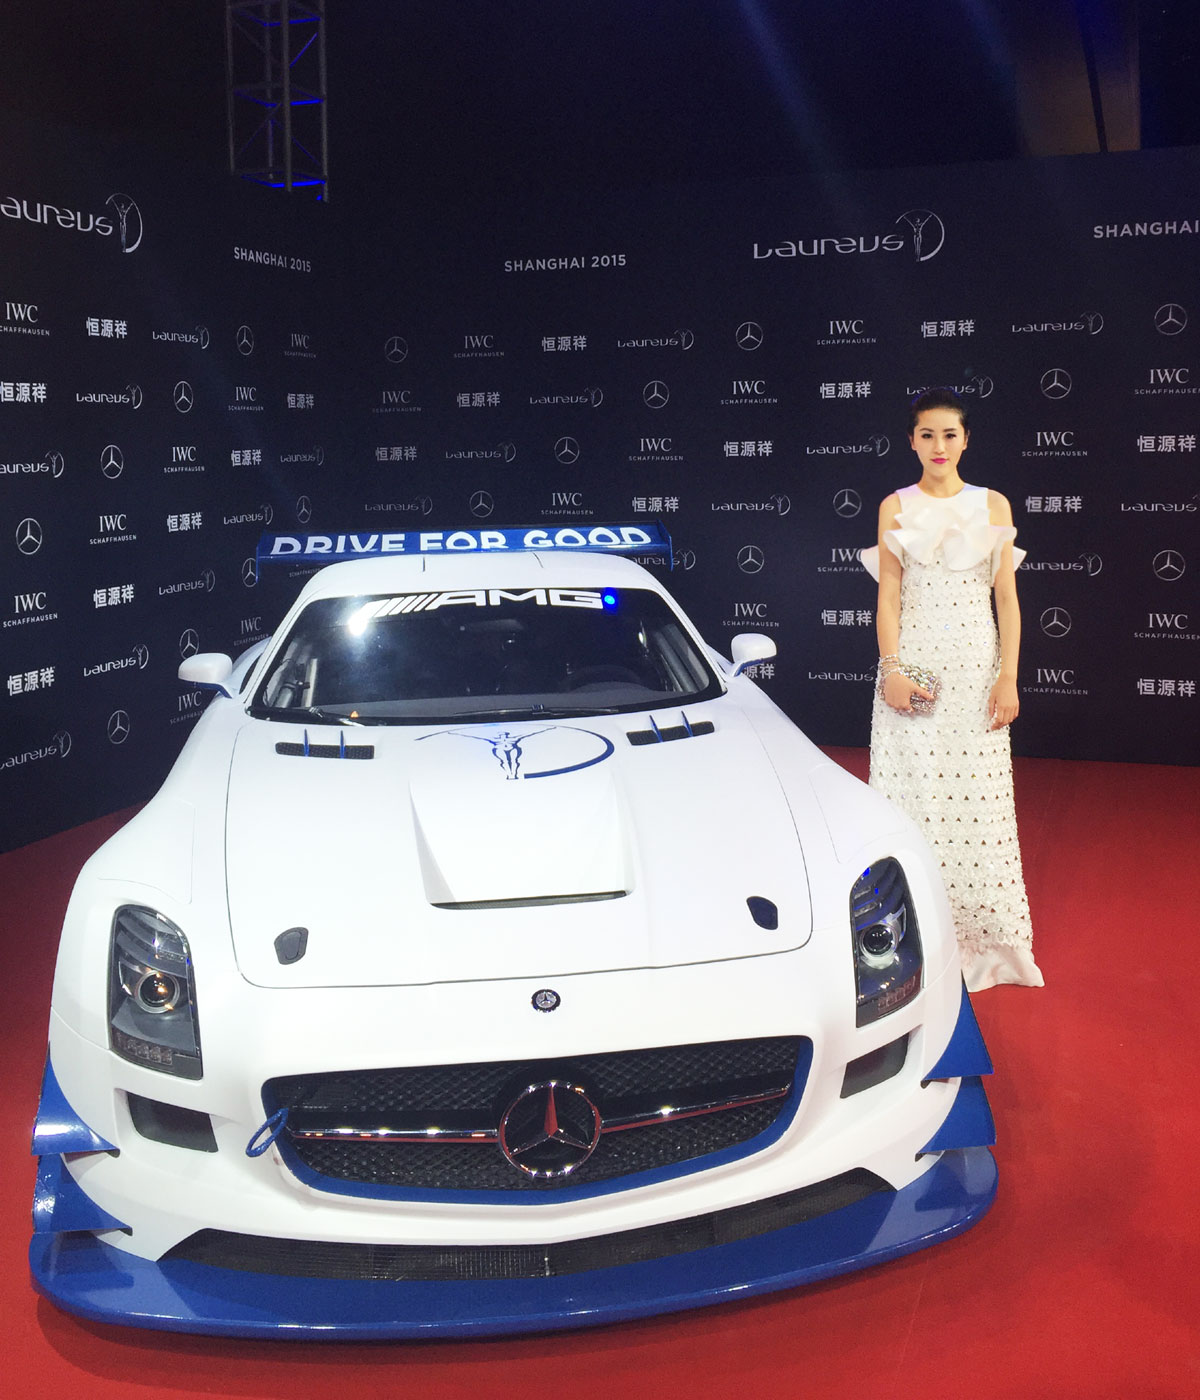 elle lee_elleiconlee_李文煊_laureus_2015_shanghai_China_red_carpet_勞倫斯上海紅毯_02